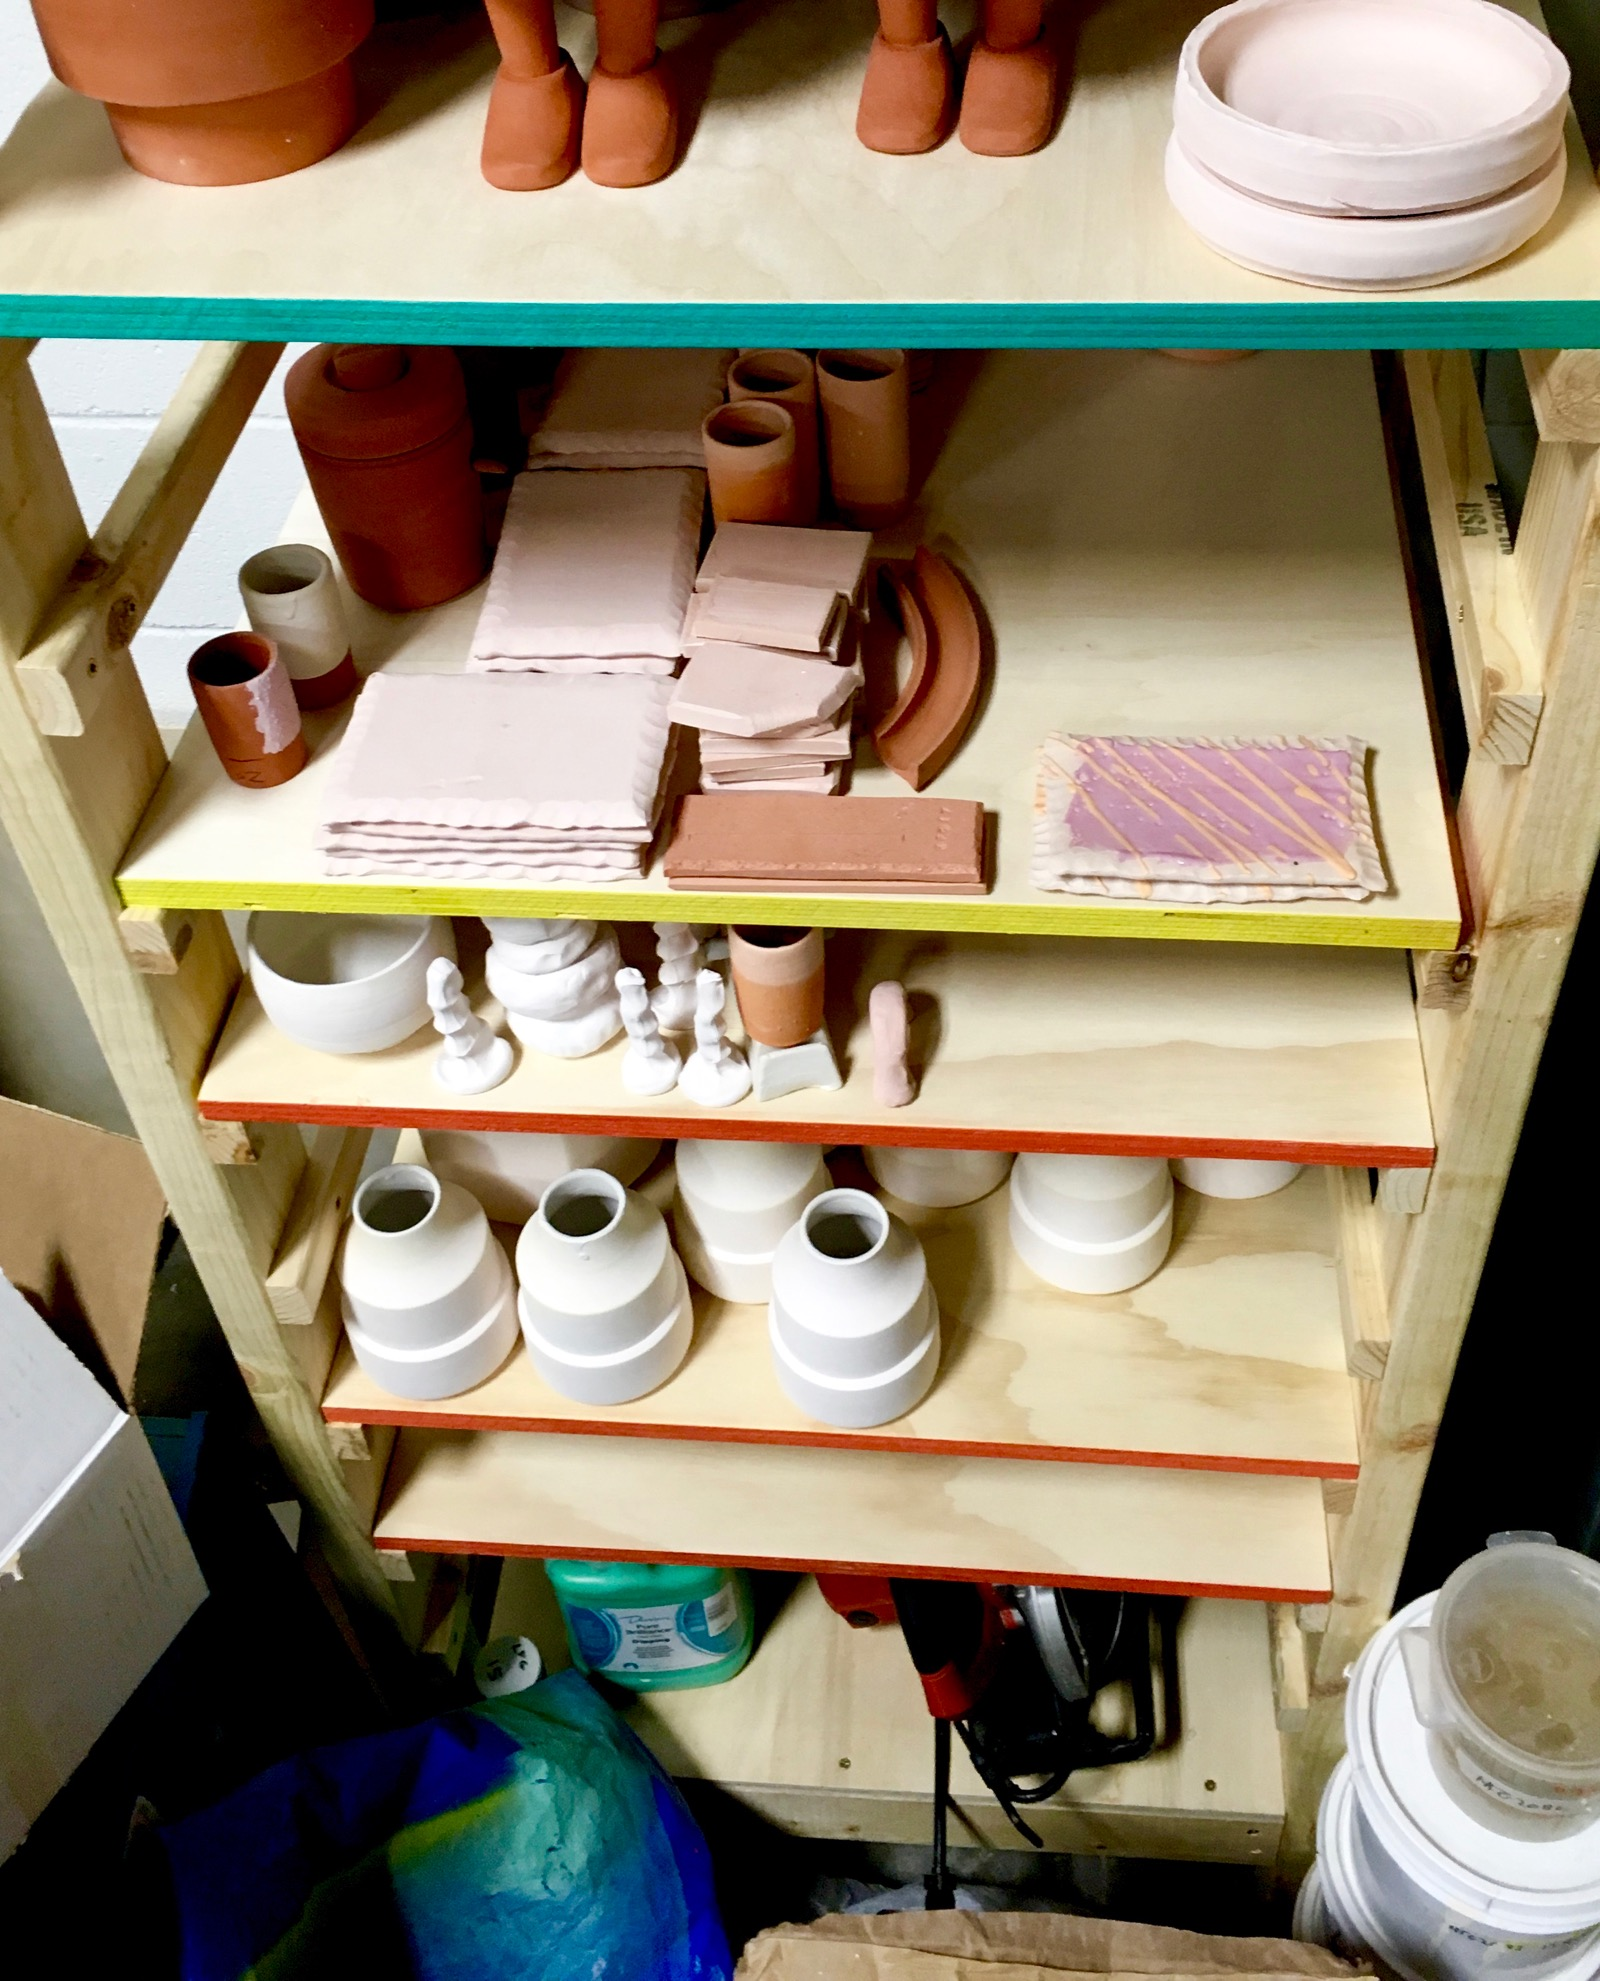 The finished rack. The shelves can be positioned to fit the height of the work. The edge colors indicate what cone of the work on that shelf.